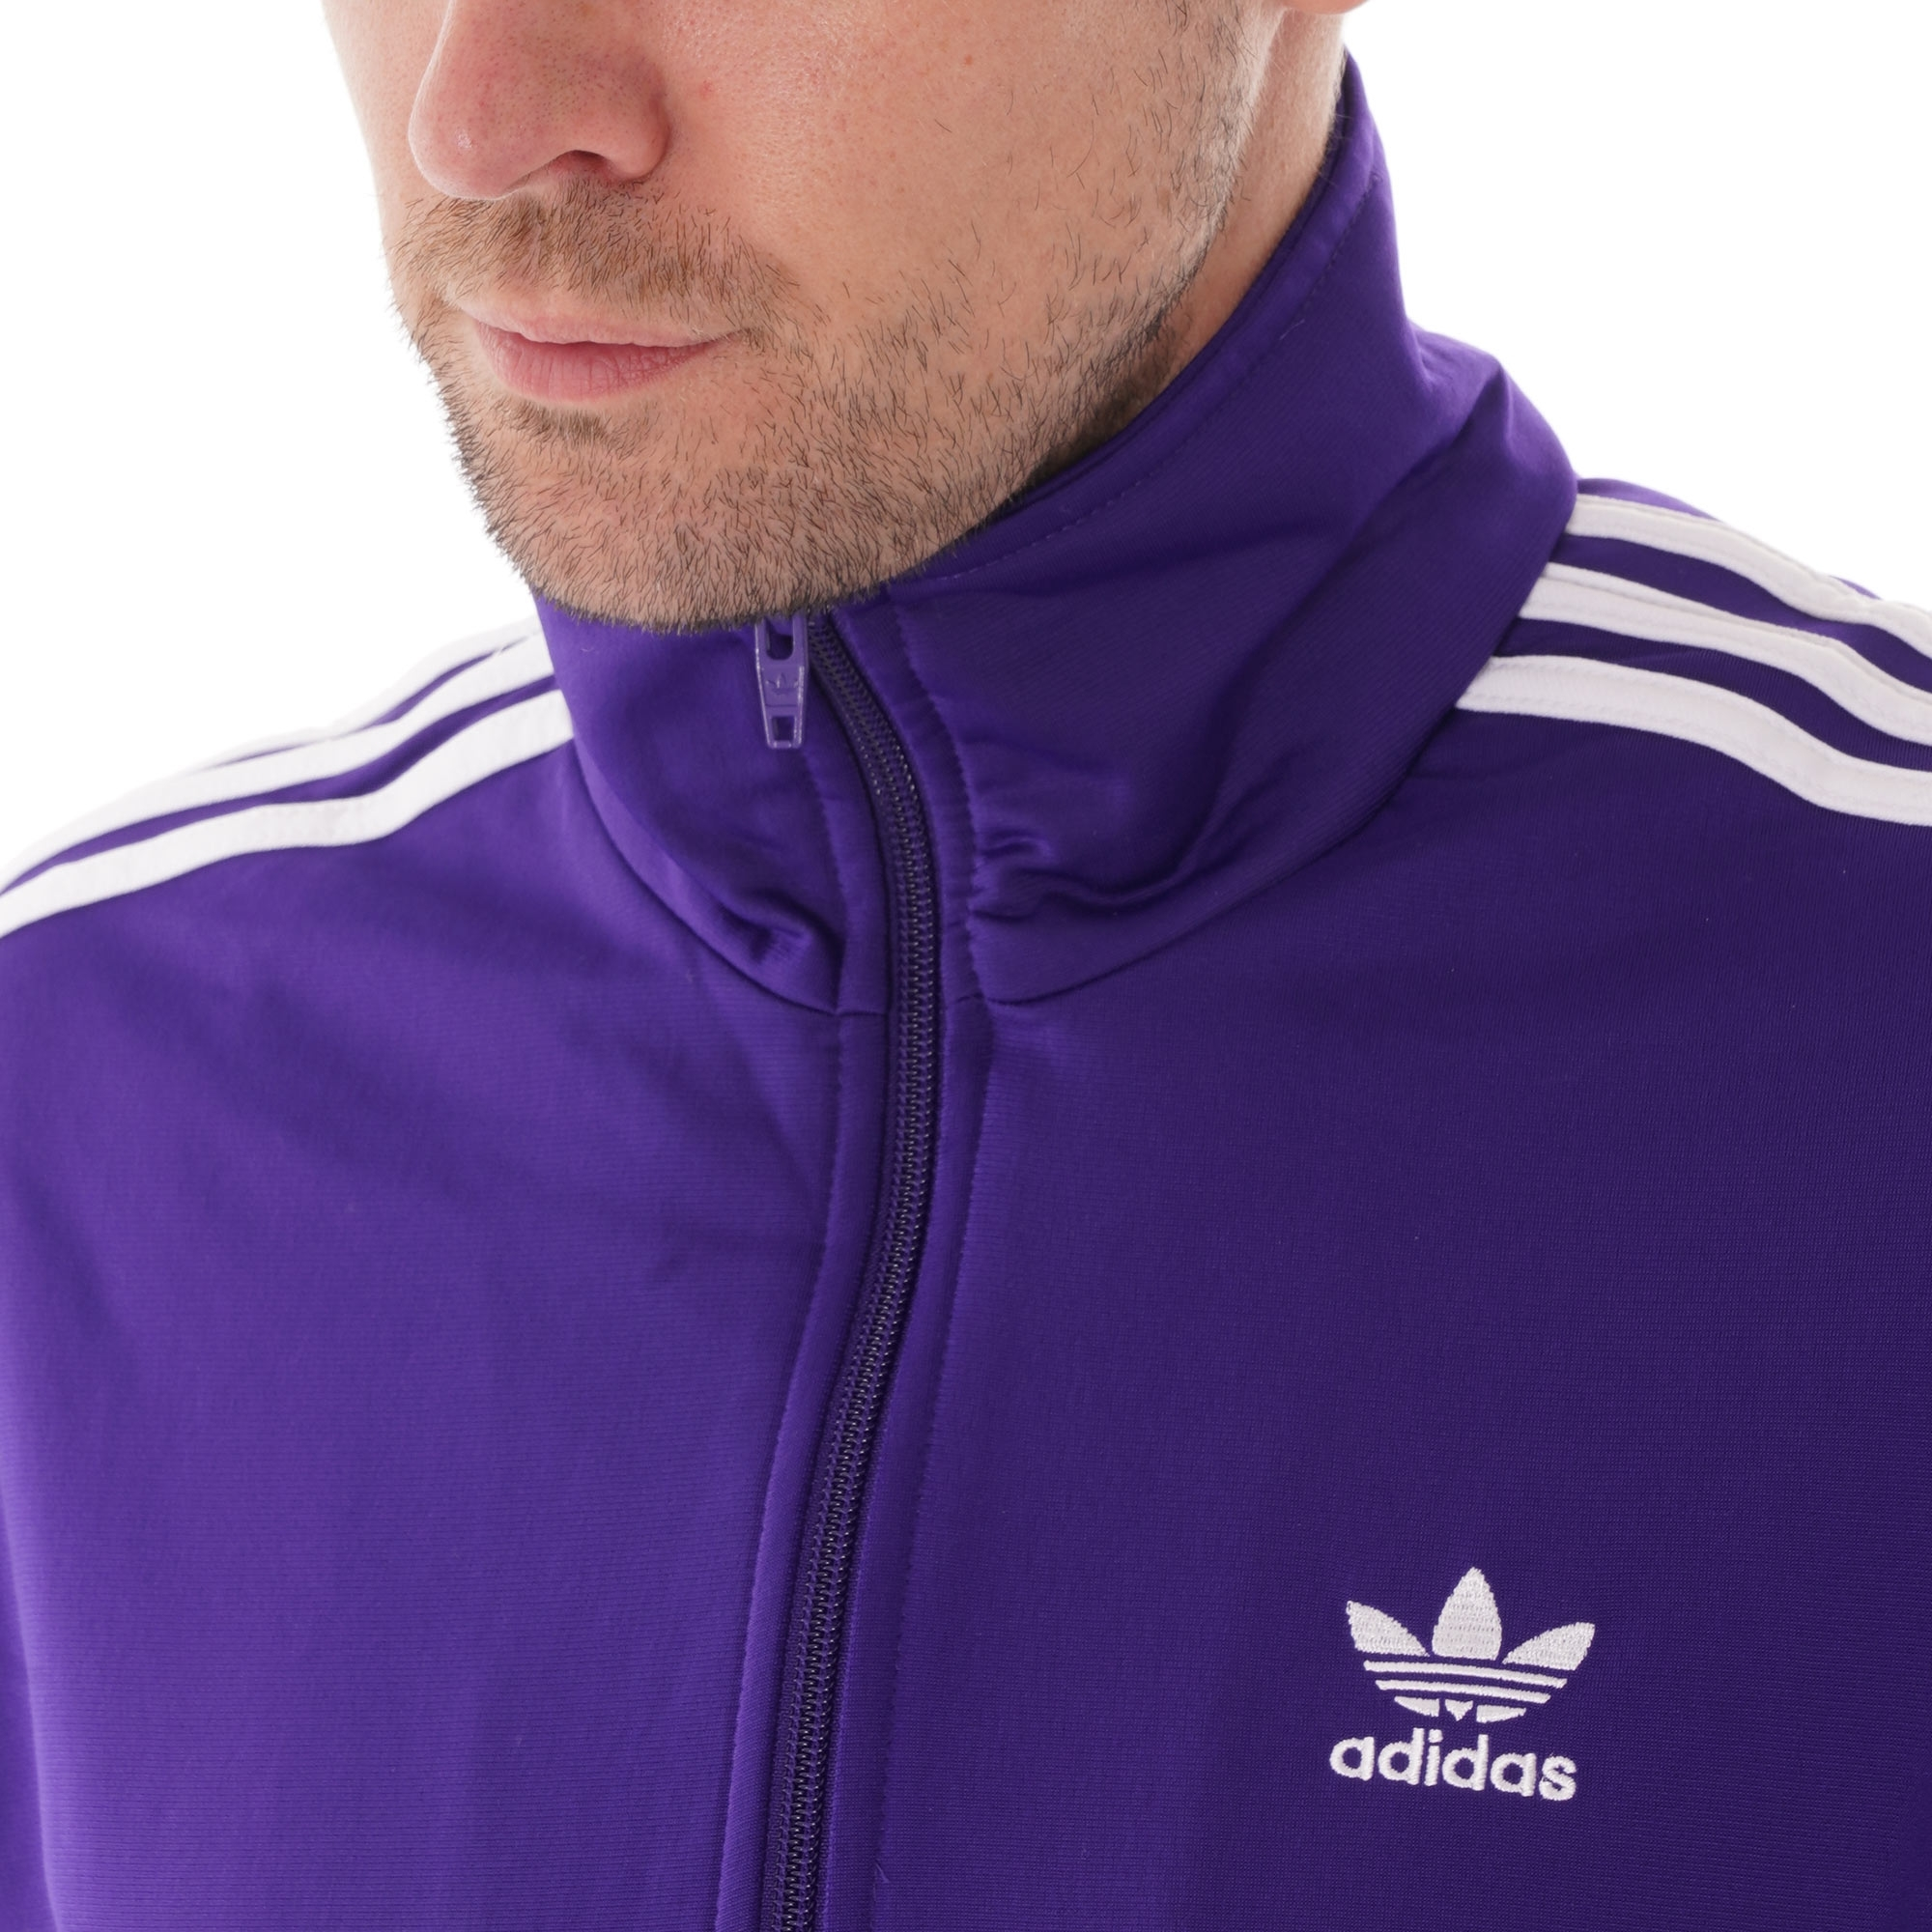 Details about Adidas Track Jacket Firebird Purple Trefoil Logo Black 3 Stripe Retro Size L